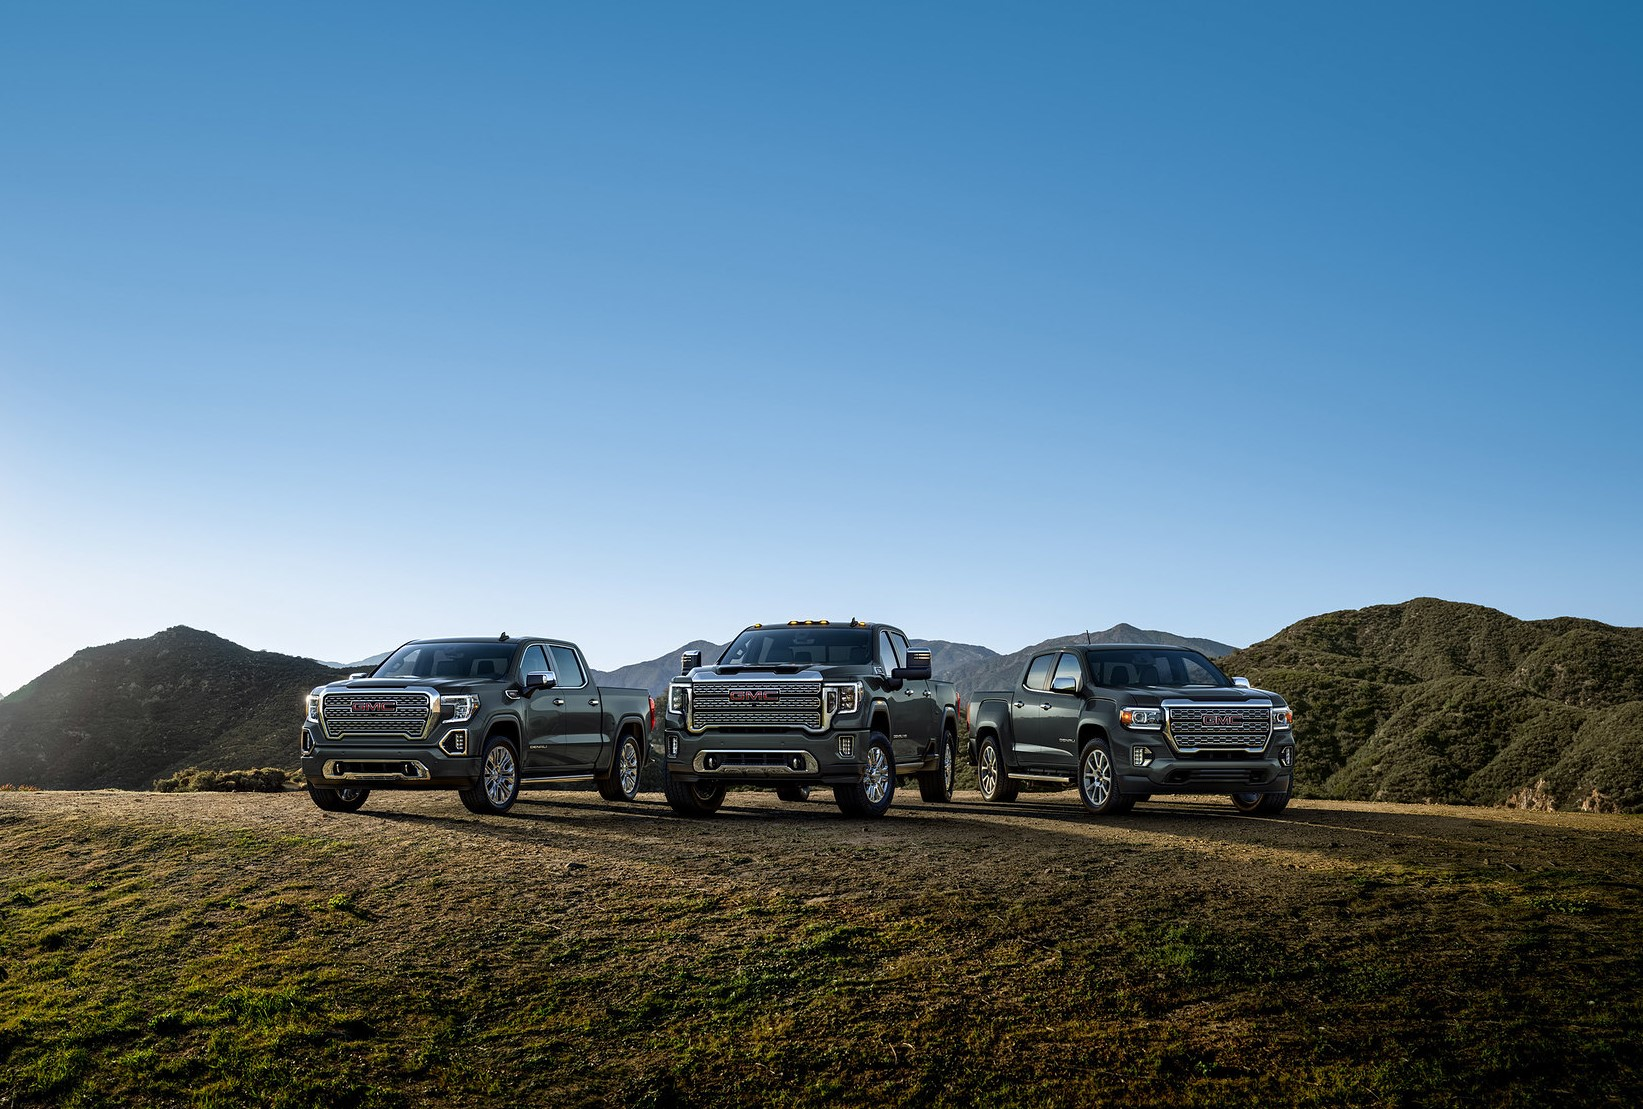 GMC Reveals 2021 Sierra Updates | Anthony Buick GMC In Gurnee, IL